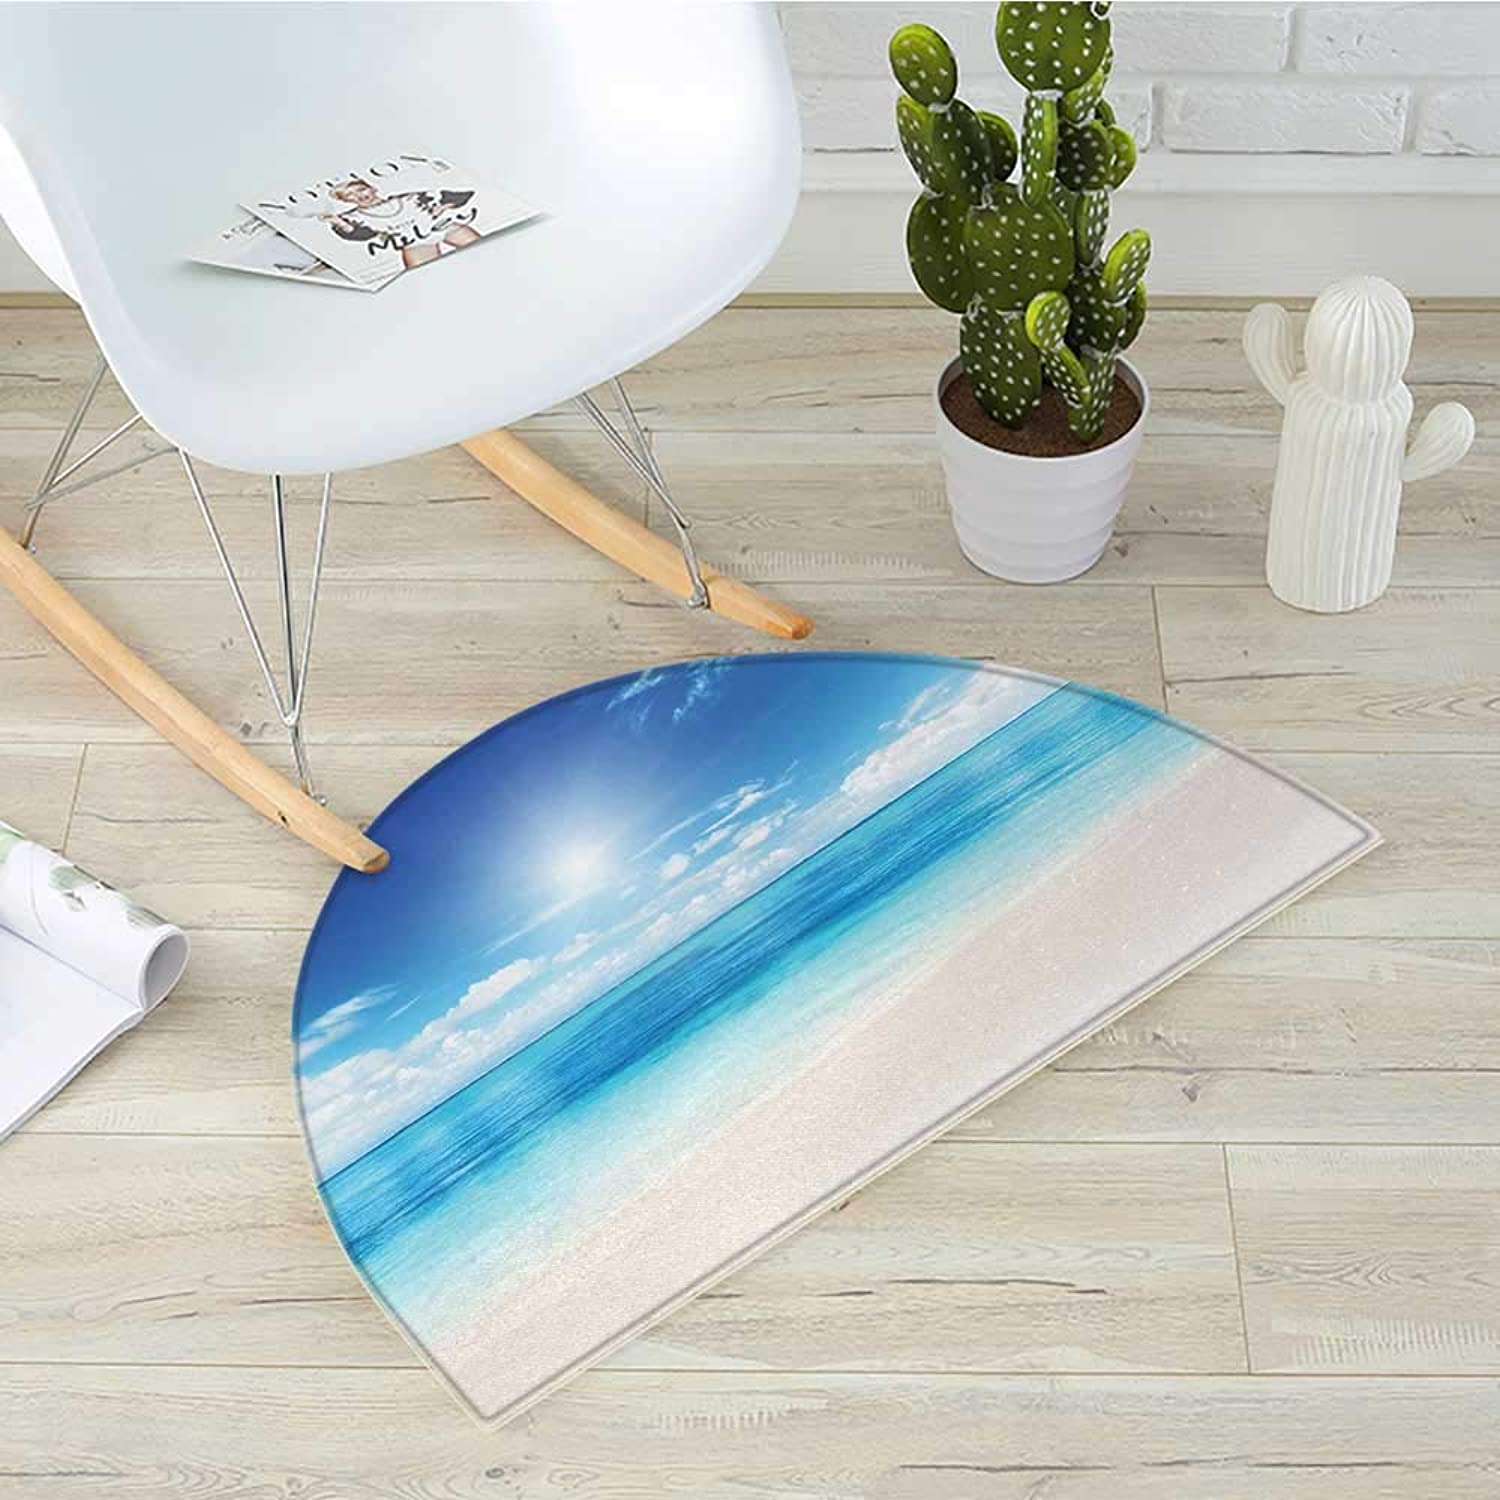 Ocean Semicircle Doormat Beach View from Caribbean Sea in a Sunny Day Exotic Summer Season Print Halfmoon doormats H 35.4  xD 53.1  Cream Turquoise White